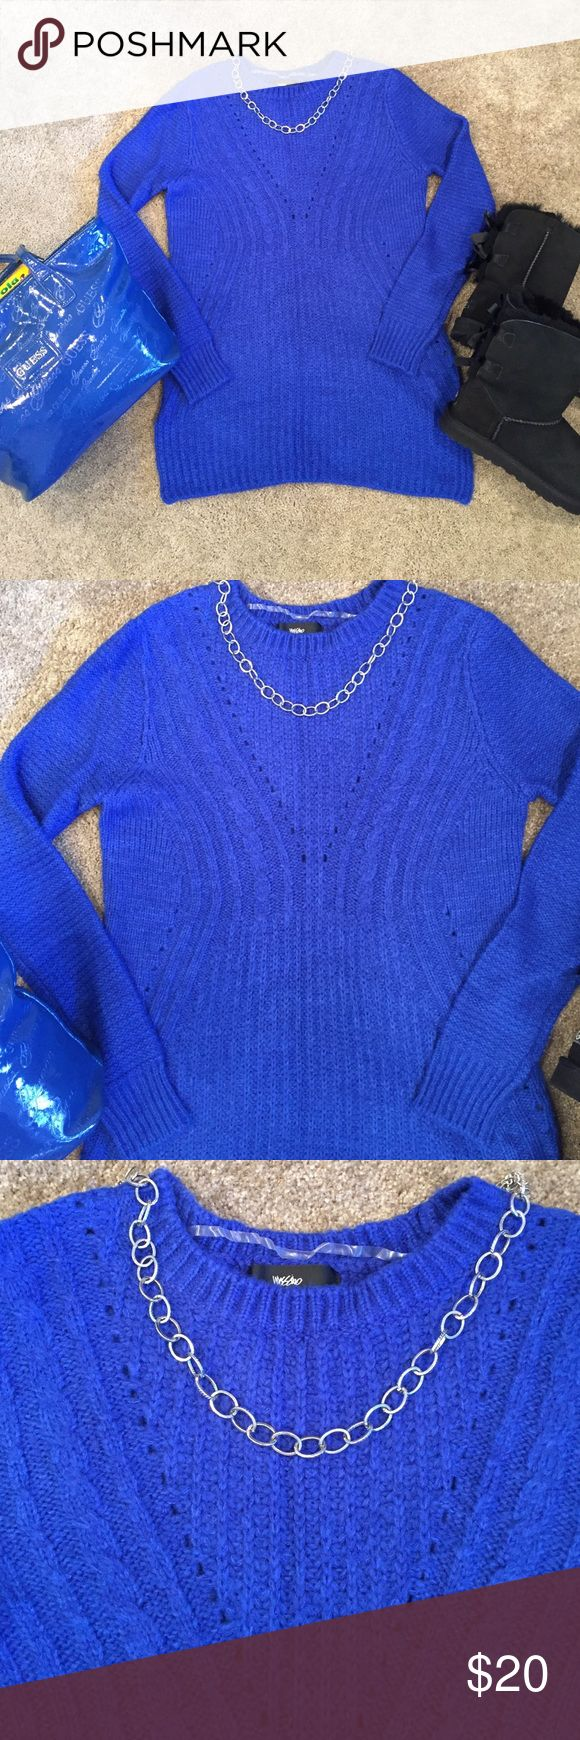 Mossimo royal blue sweater Perfect condition, worn once. Royal blue in color. Mossimo Supply Co Sweaters